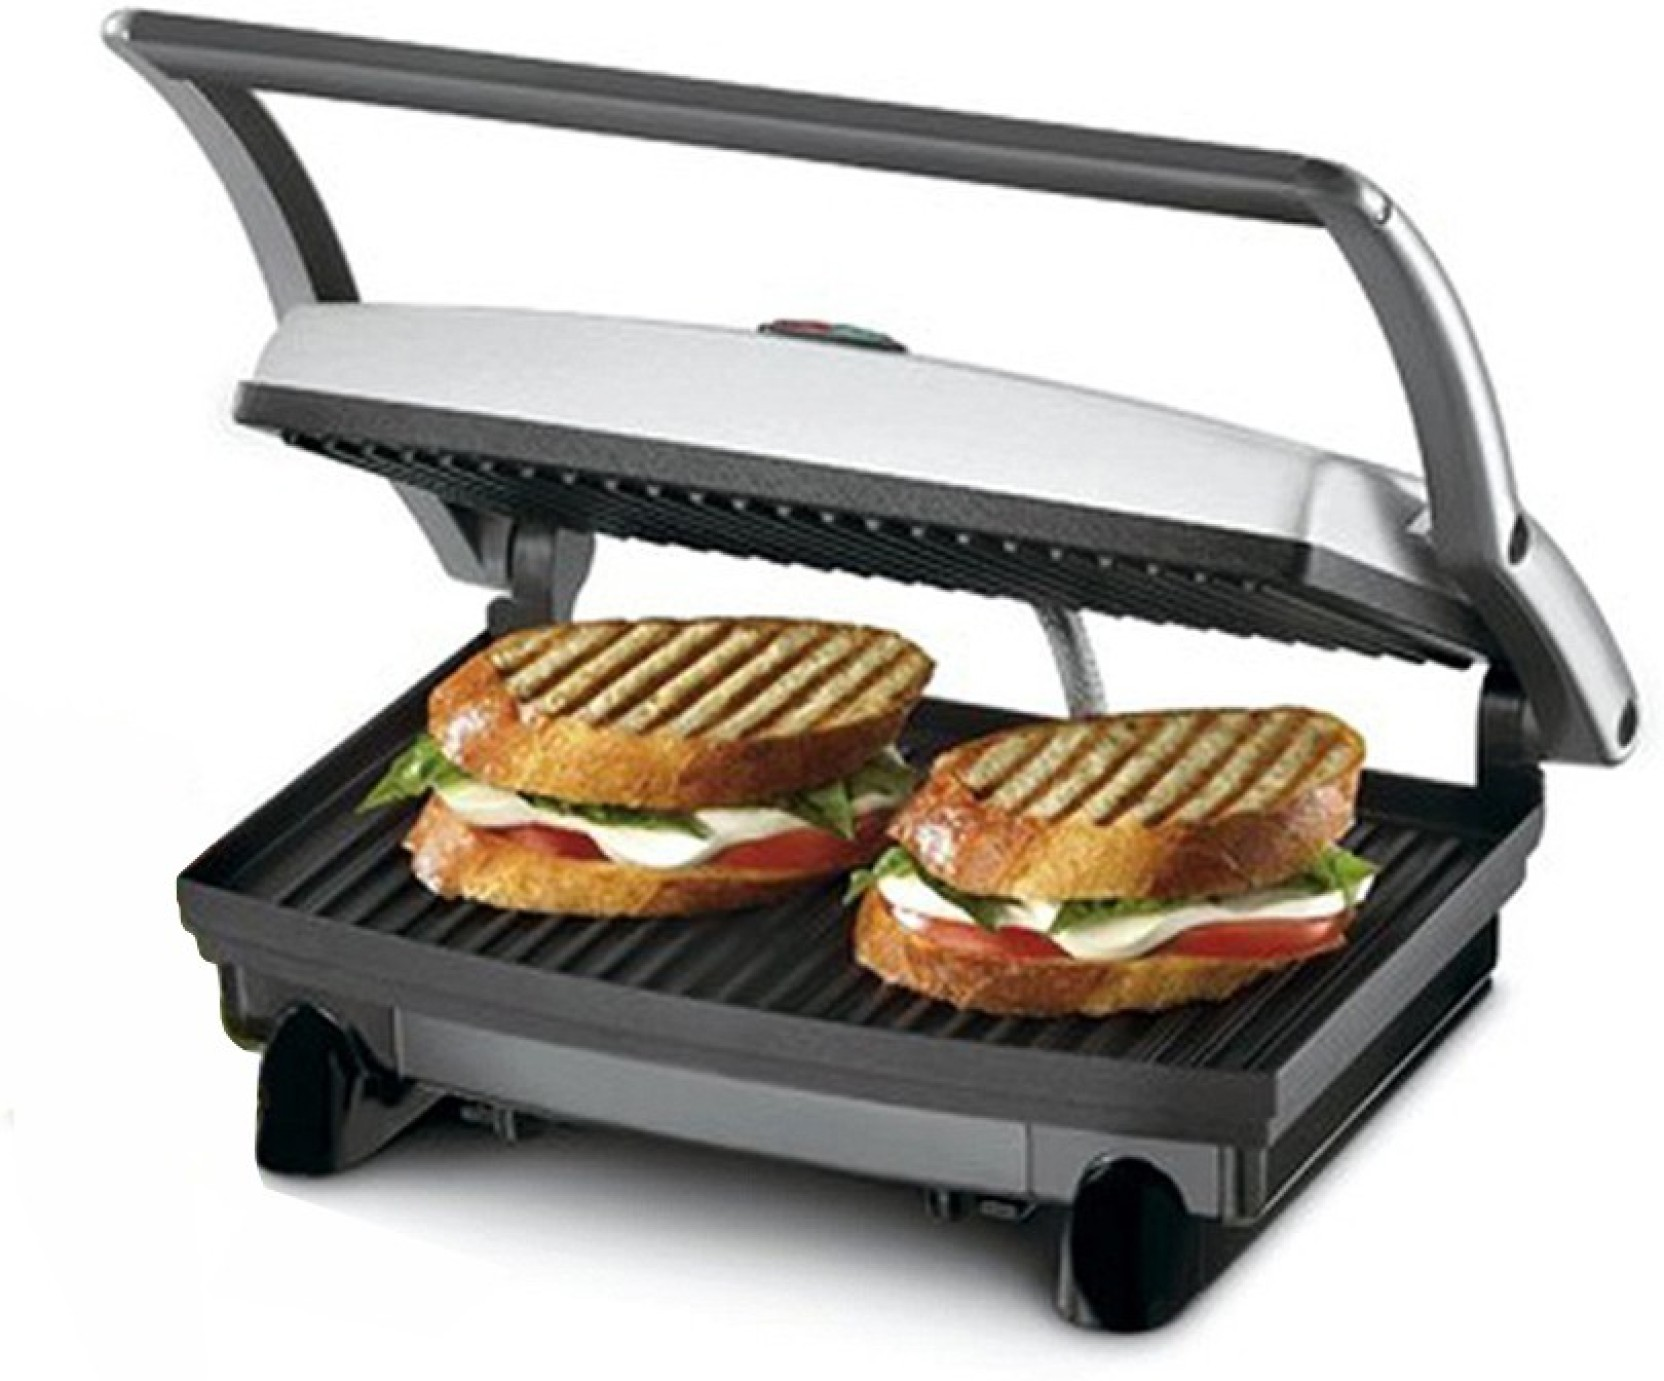 how to use sandwich maker grill